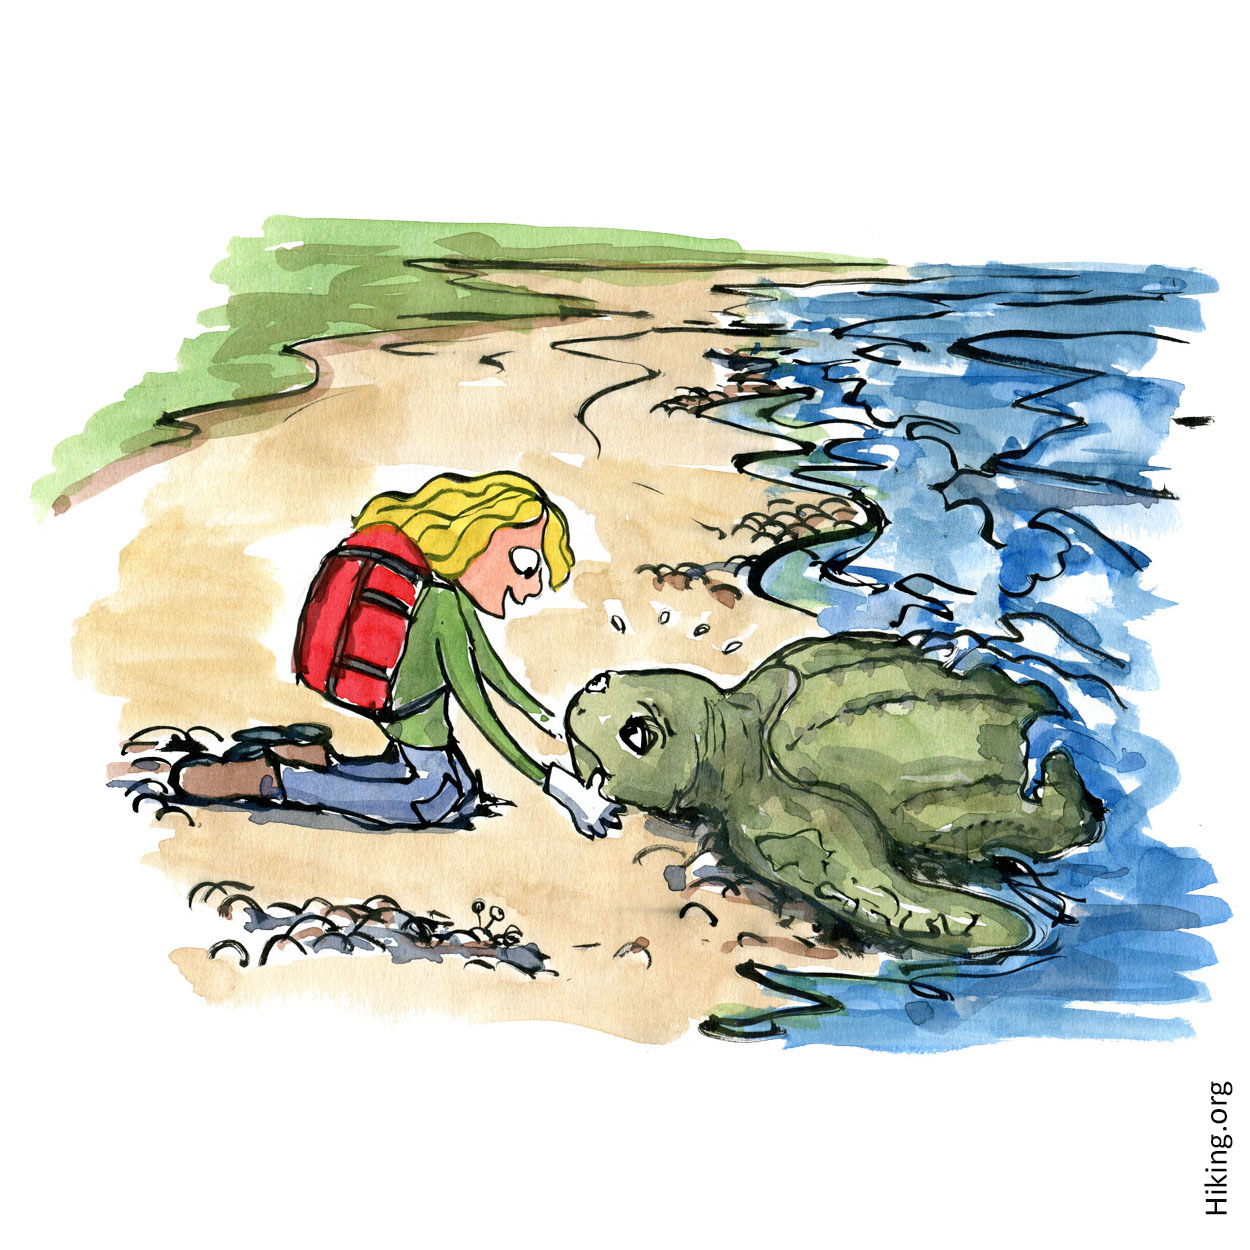 Hiker girl helping huge stranded sea turtle. Illustration by Frits Ahlefeldt, Hiking.org